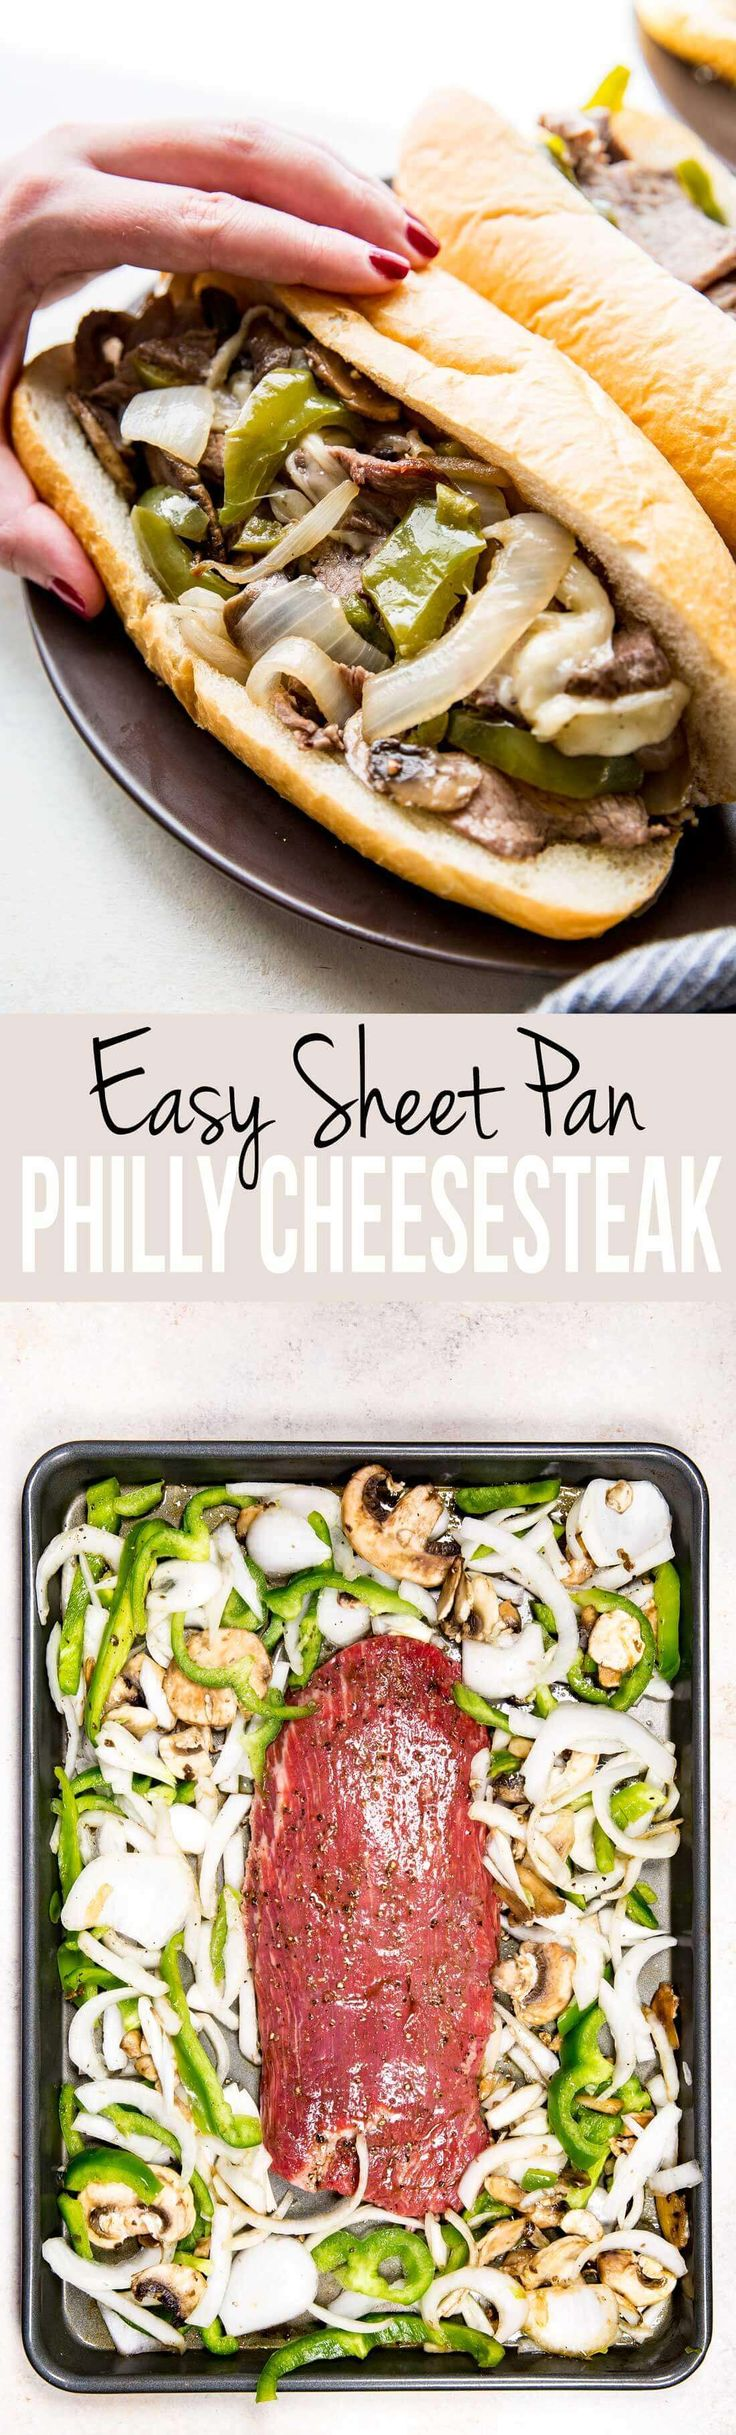 Easy Sheetpan Philly Cheesesteak by Eazy Peazy Mealz | Sheet Pan Meal Ideas for Easy Dinners